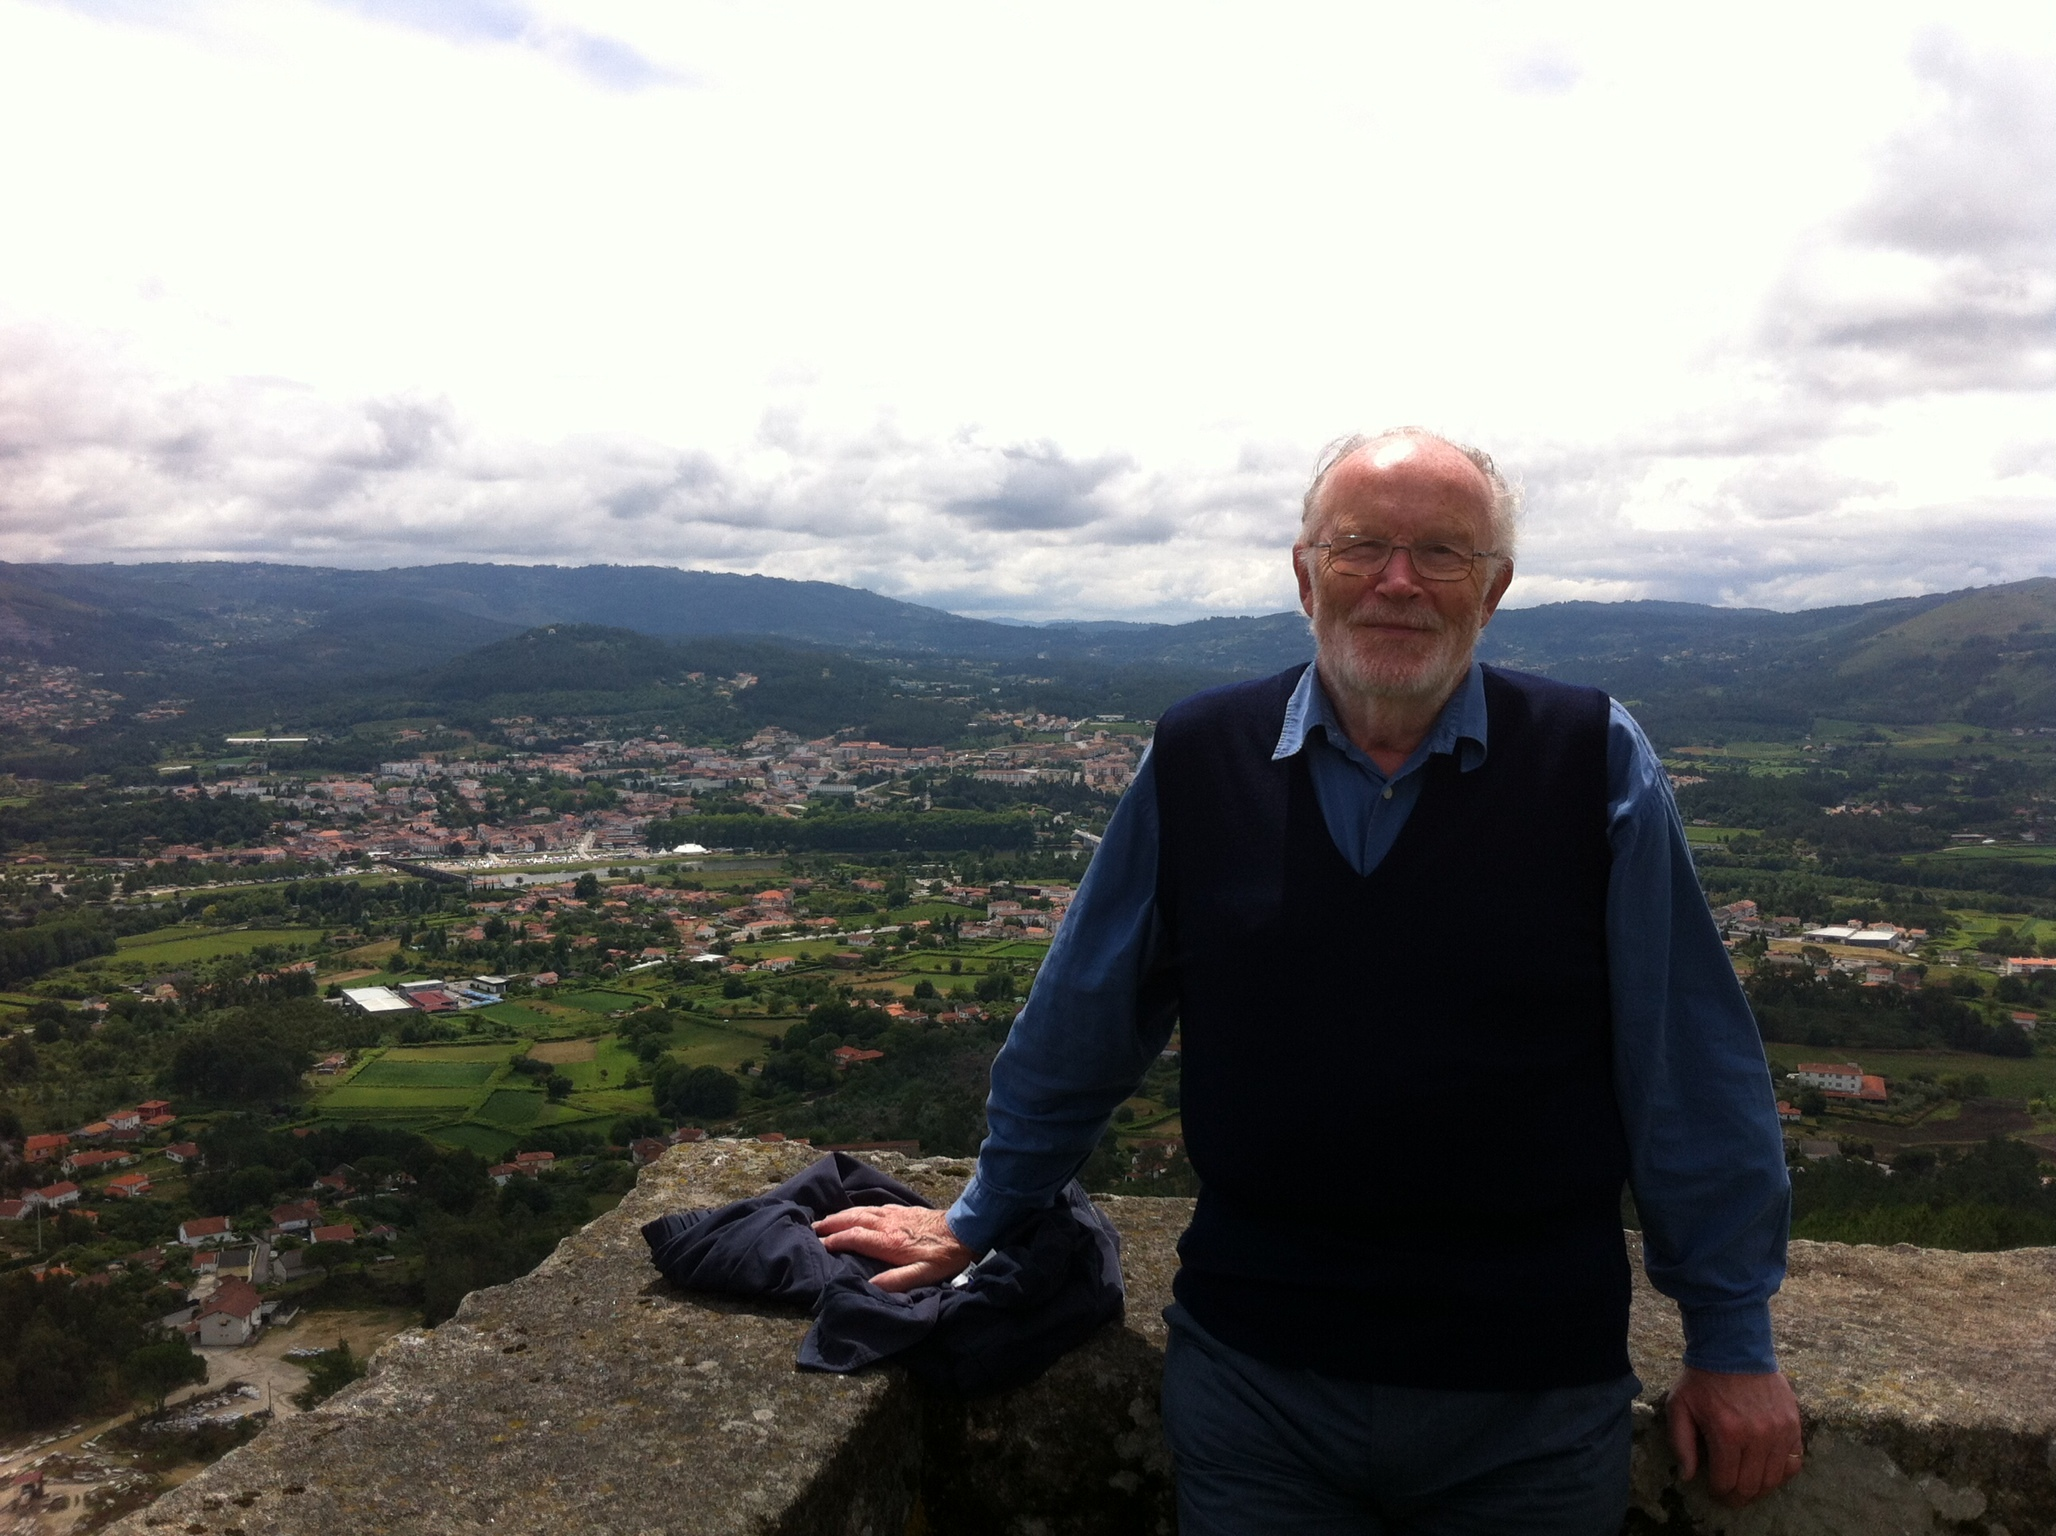 Malcolm Morgan on holiday in Portugal where he spent a lot of time after his retirement